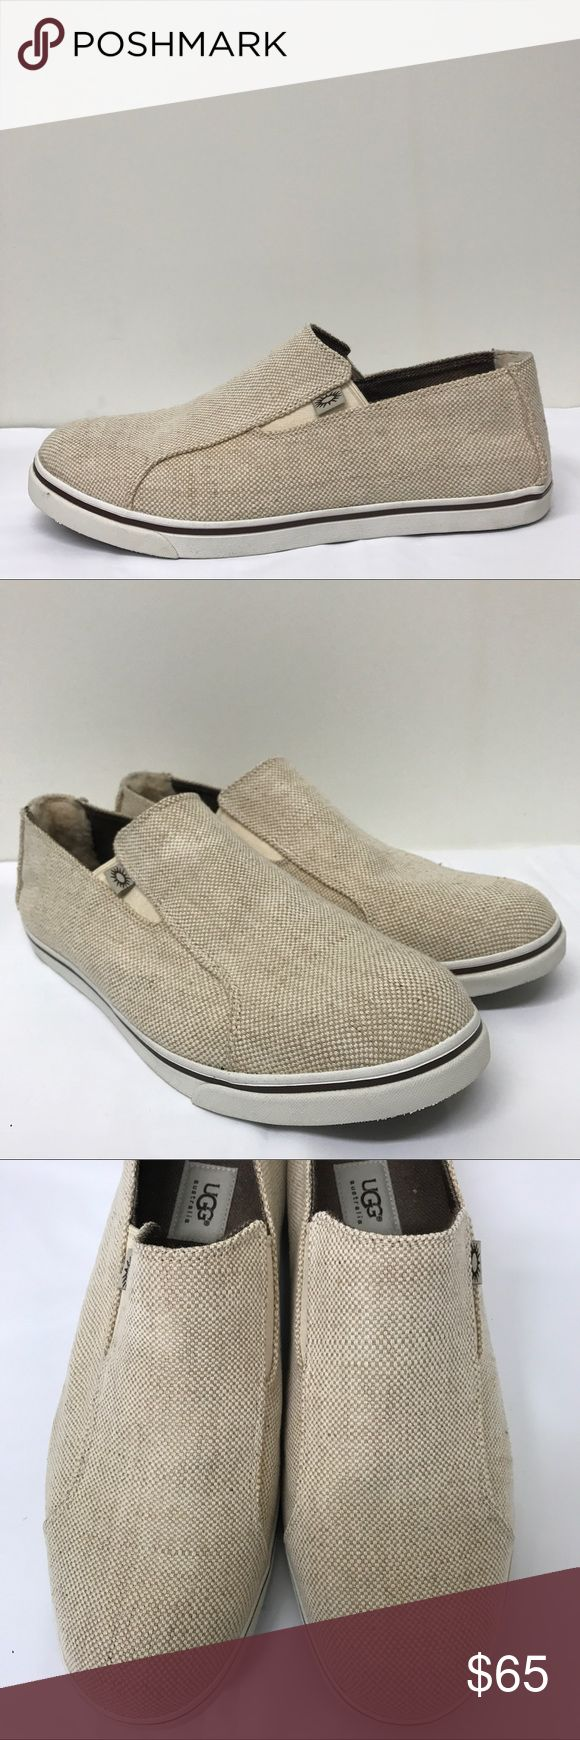 UGG men's canvas shoes 11.5 Brand new with box. Retail $150. UGG Shoes Athletic Shoes